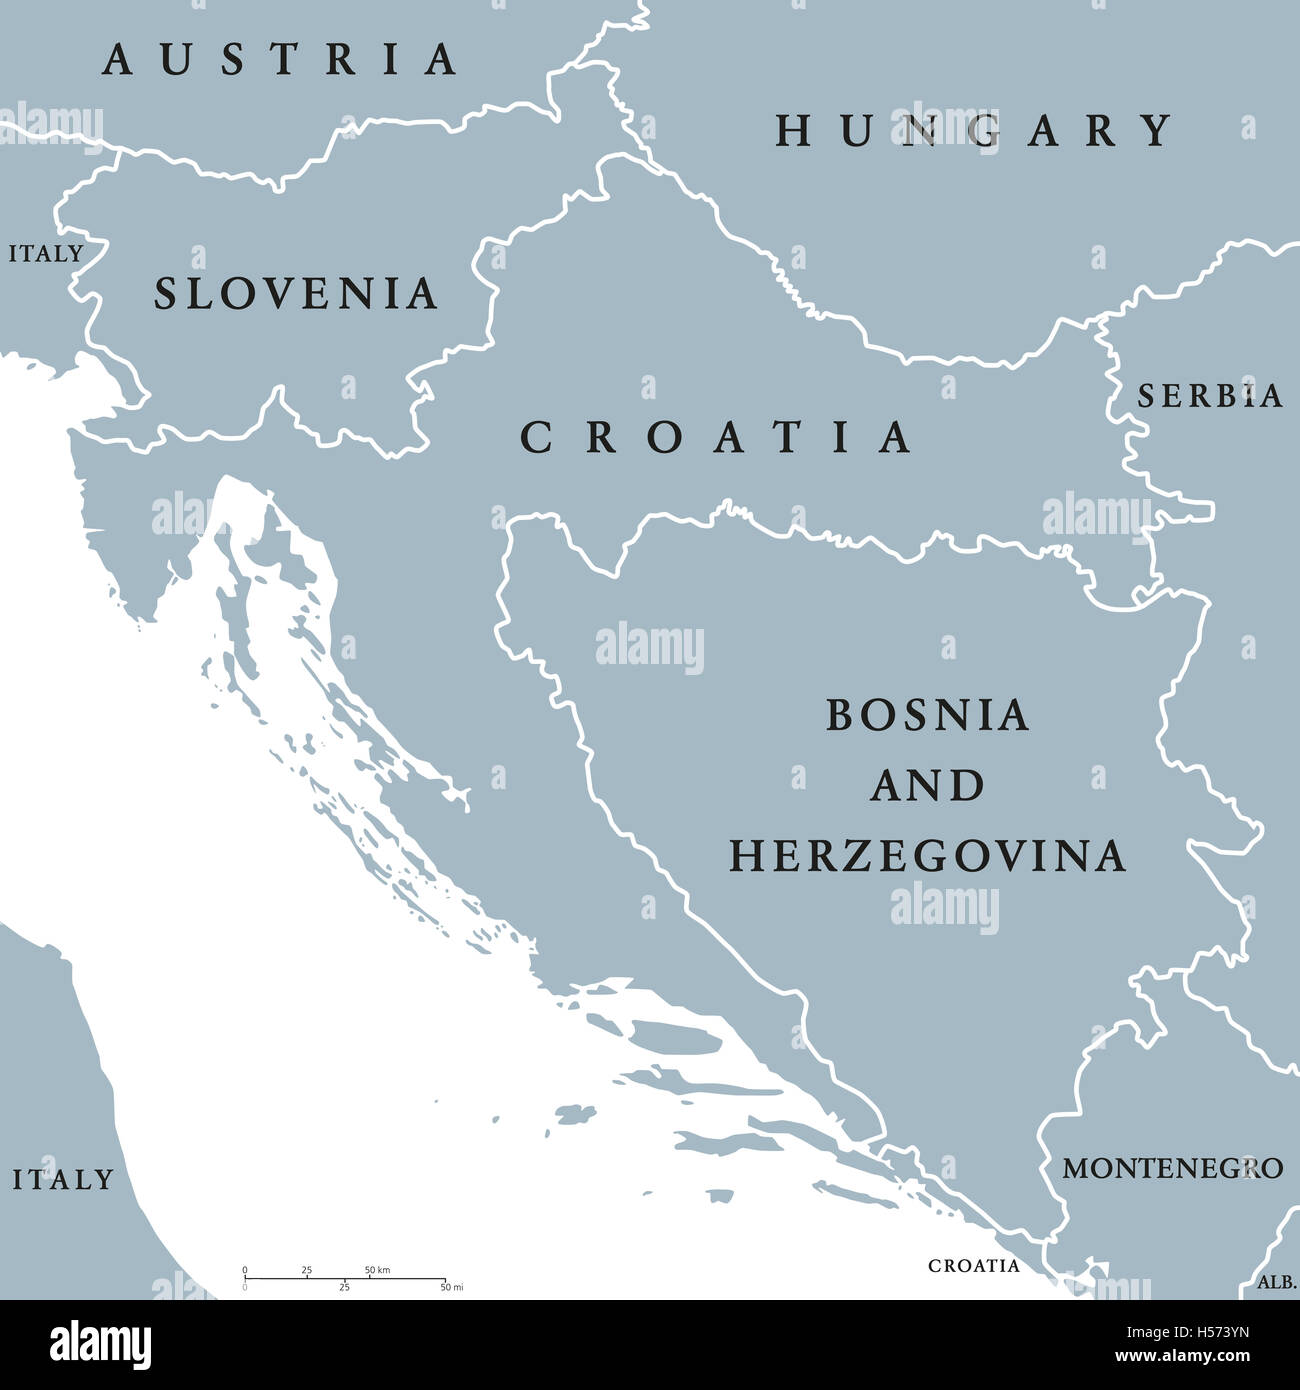 Balkans Map Stock Photos Balkans Map Stock Images Alamy - Montenegro maps with countries